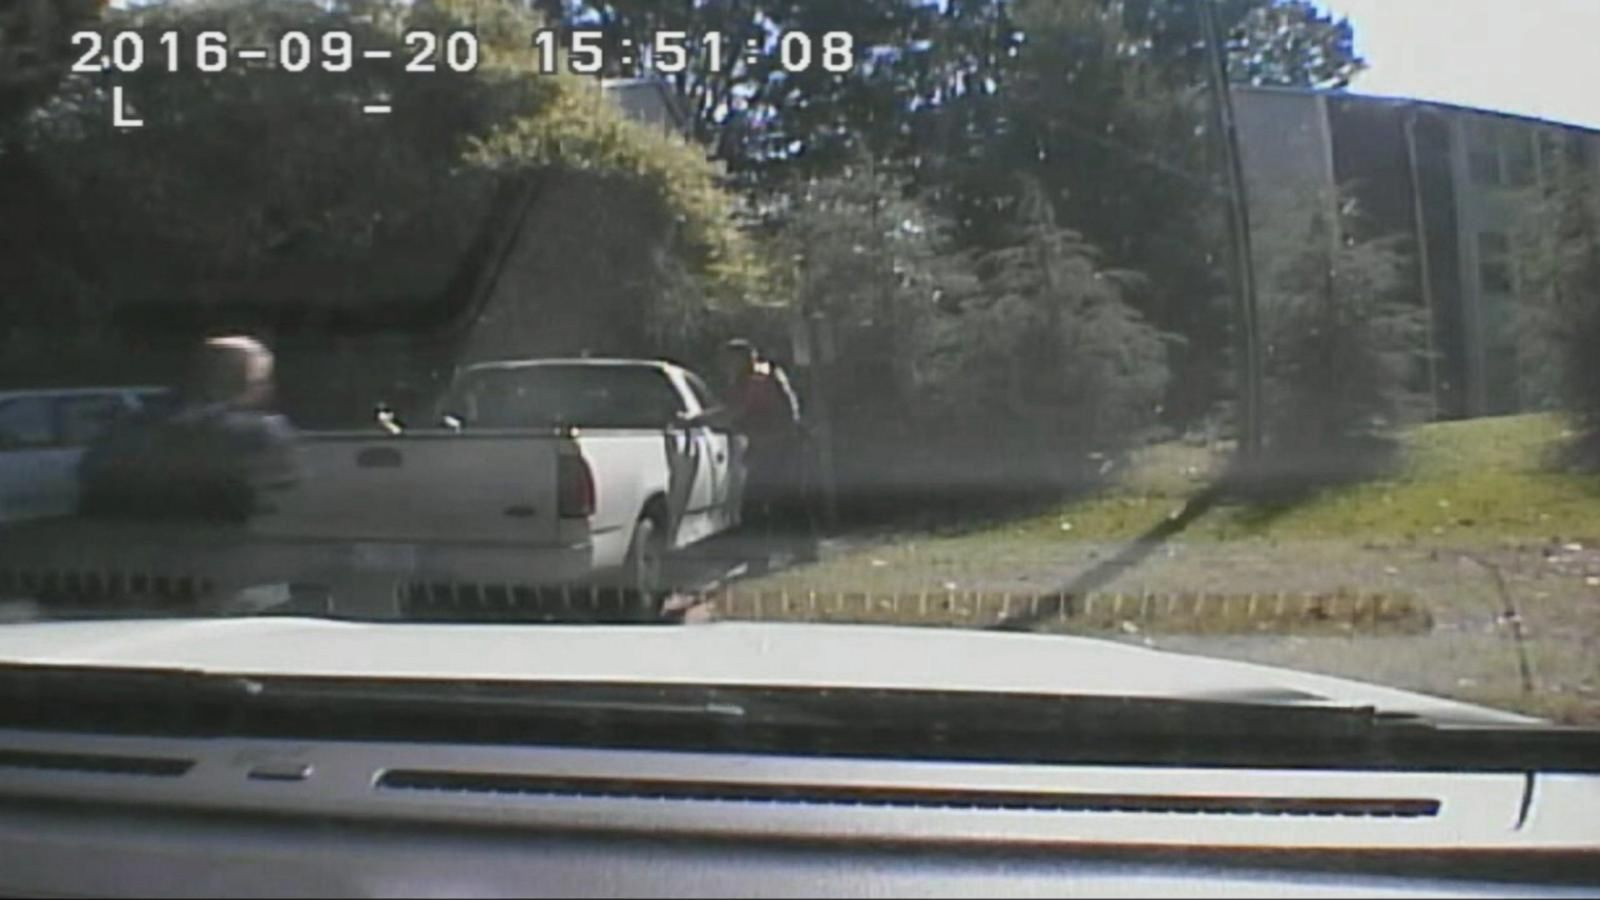 VIDEO: Charlotte Police Release Footage in Keith Lamont Scott Shooting